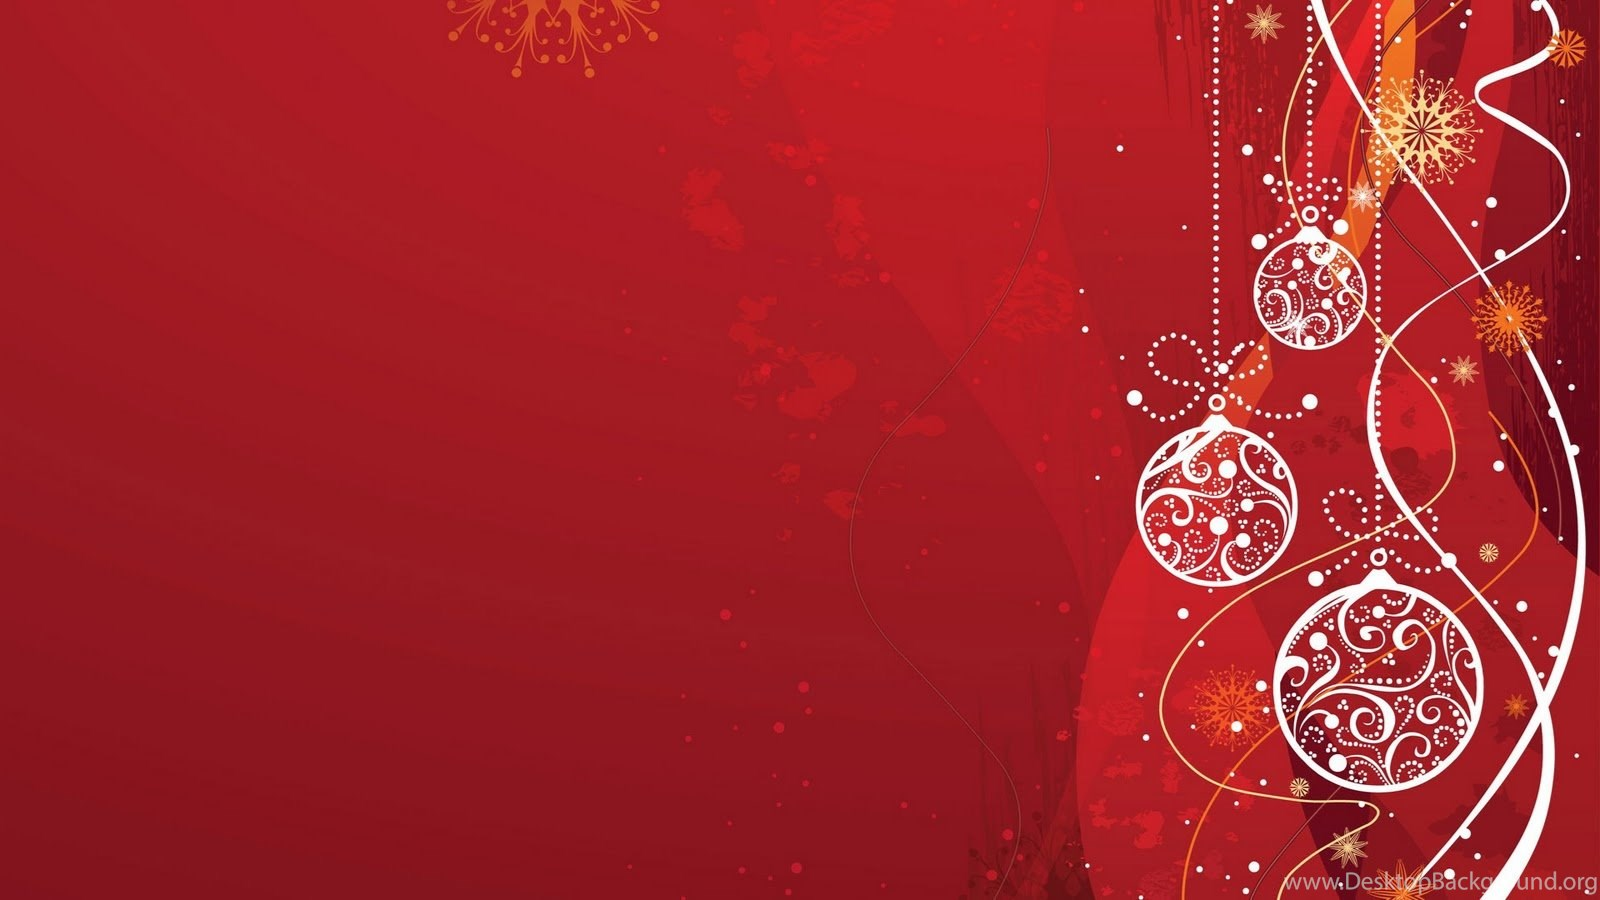 xmas wallpapers wallpapers